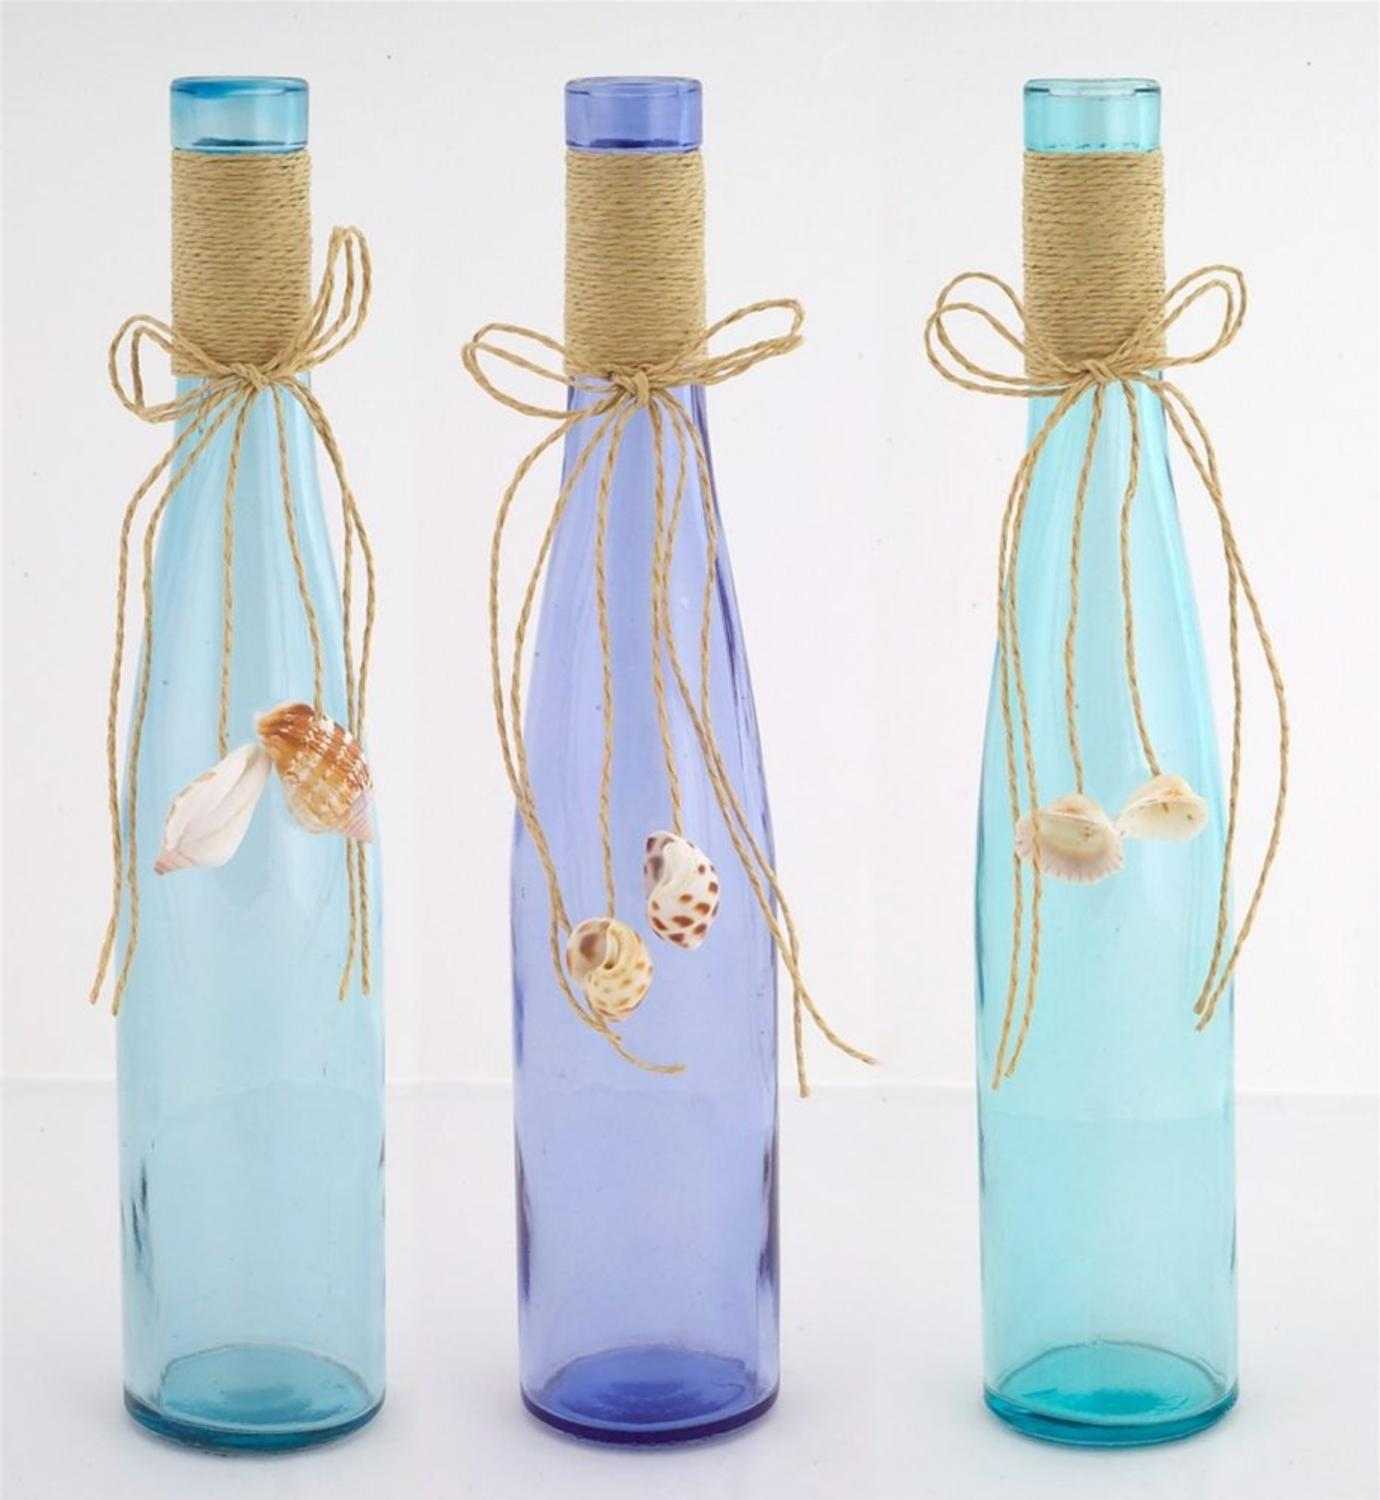 "Club Pack of 12 Beach Inspired Decorative Burlap and Seashell Bottles 11.75"" by Melrose"